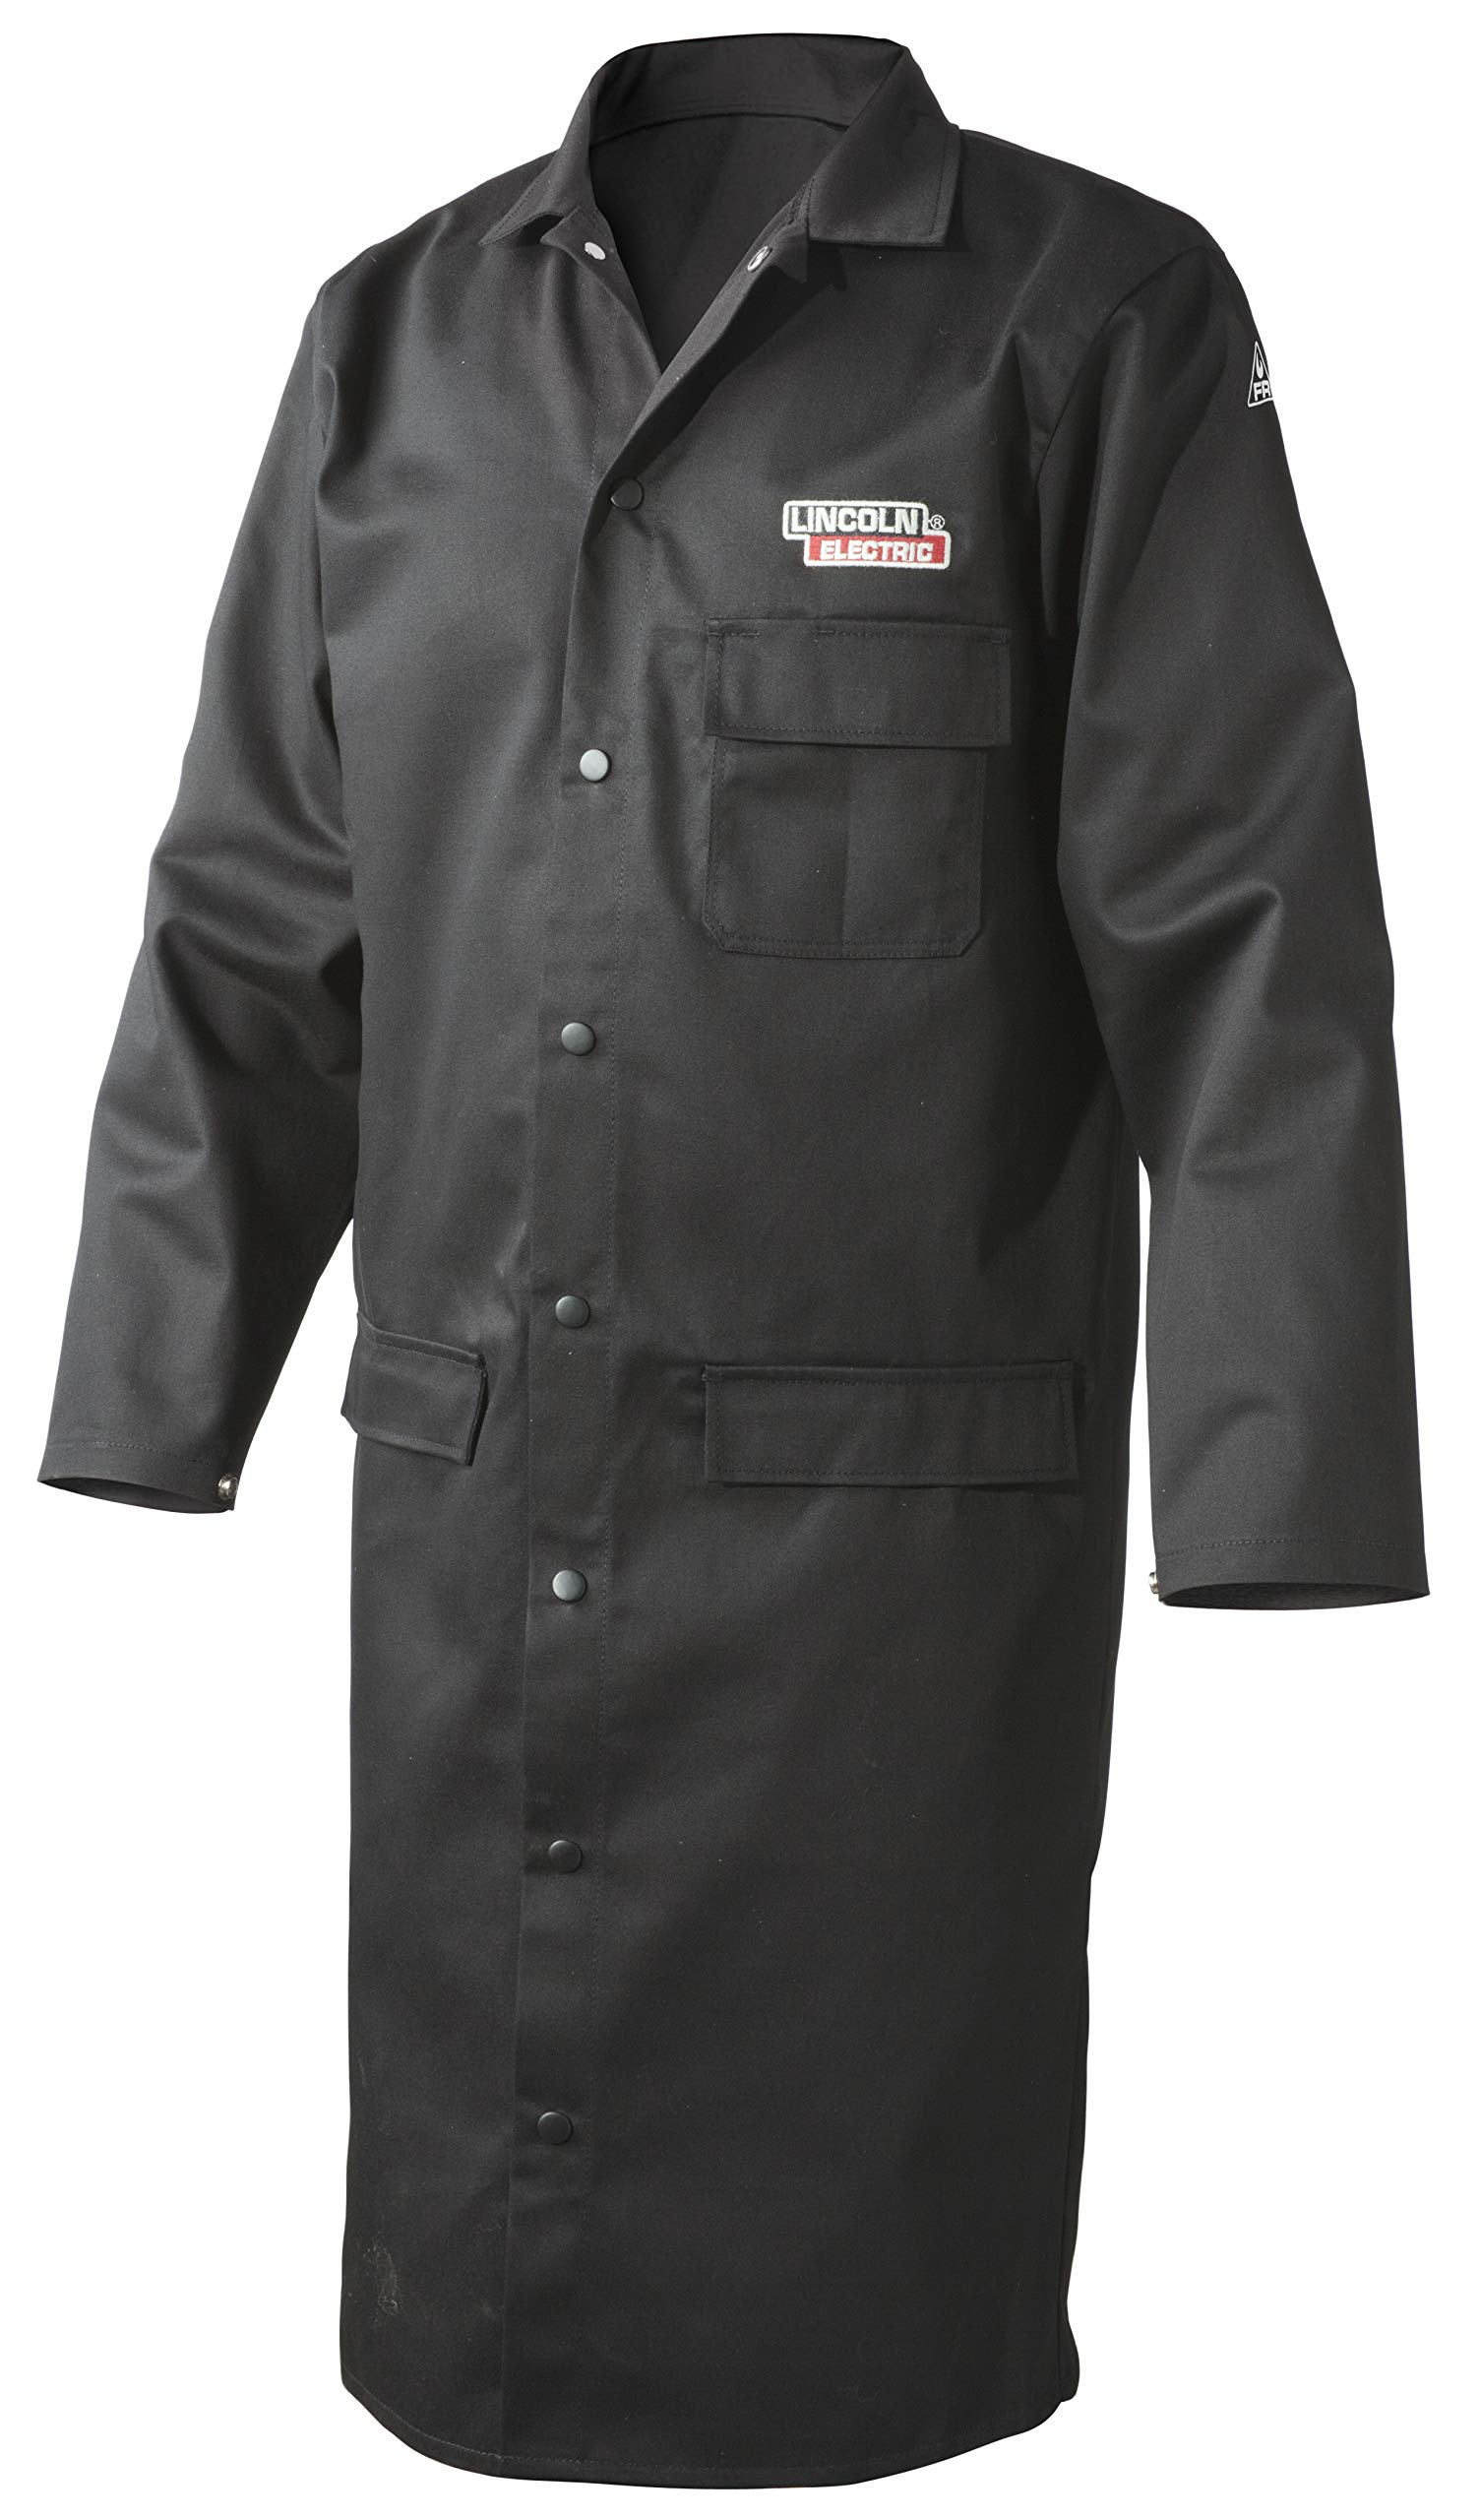 Lincoln Electric Welding Lab Coat | Premium Flame Resistant (FR) Cotton | 45'' Length | Black | Large | K3112-L by Lincoln Electric (Image #1)